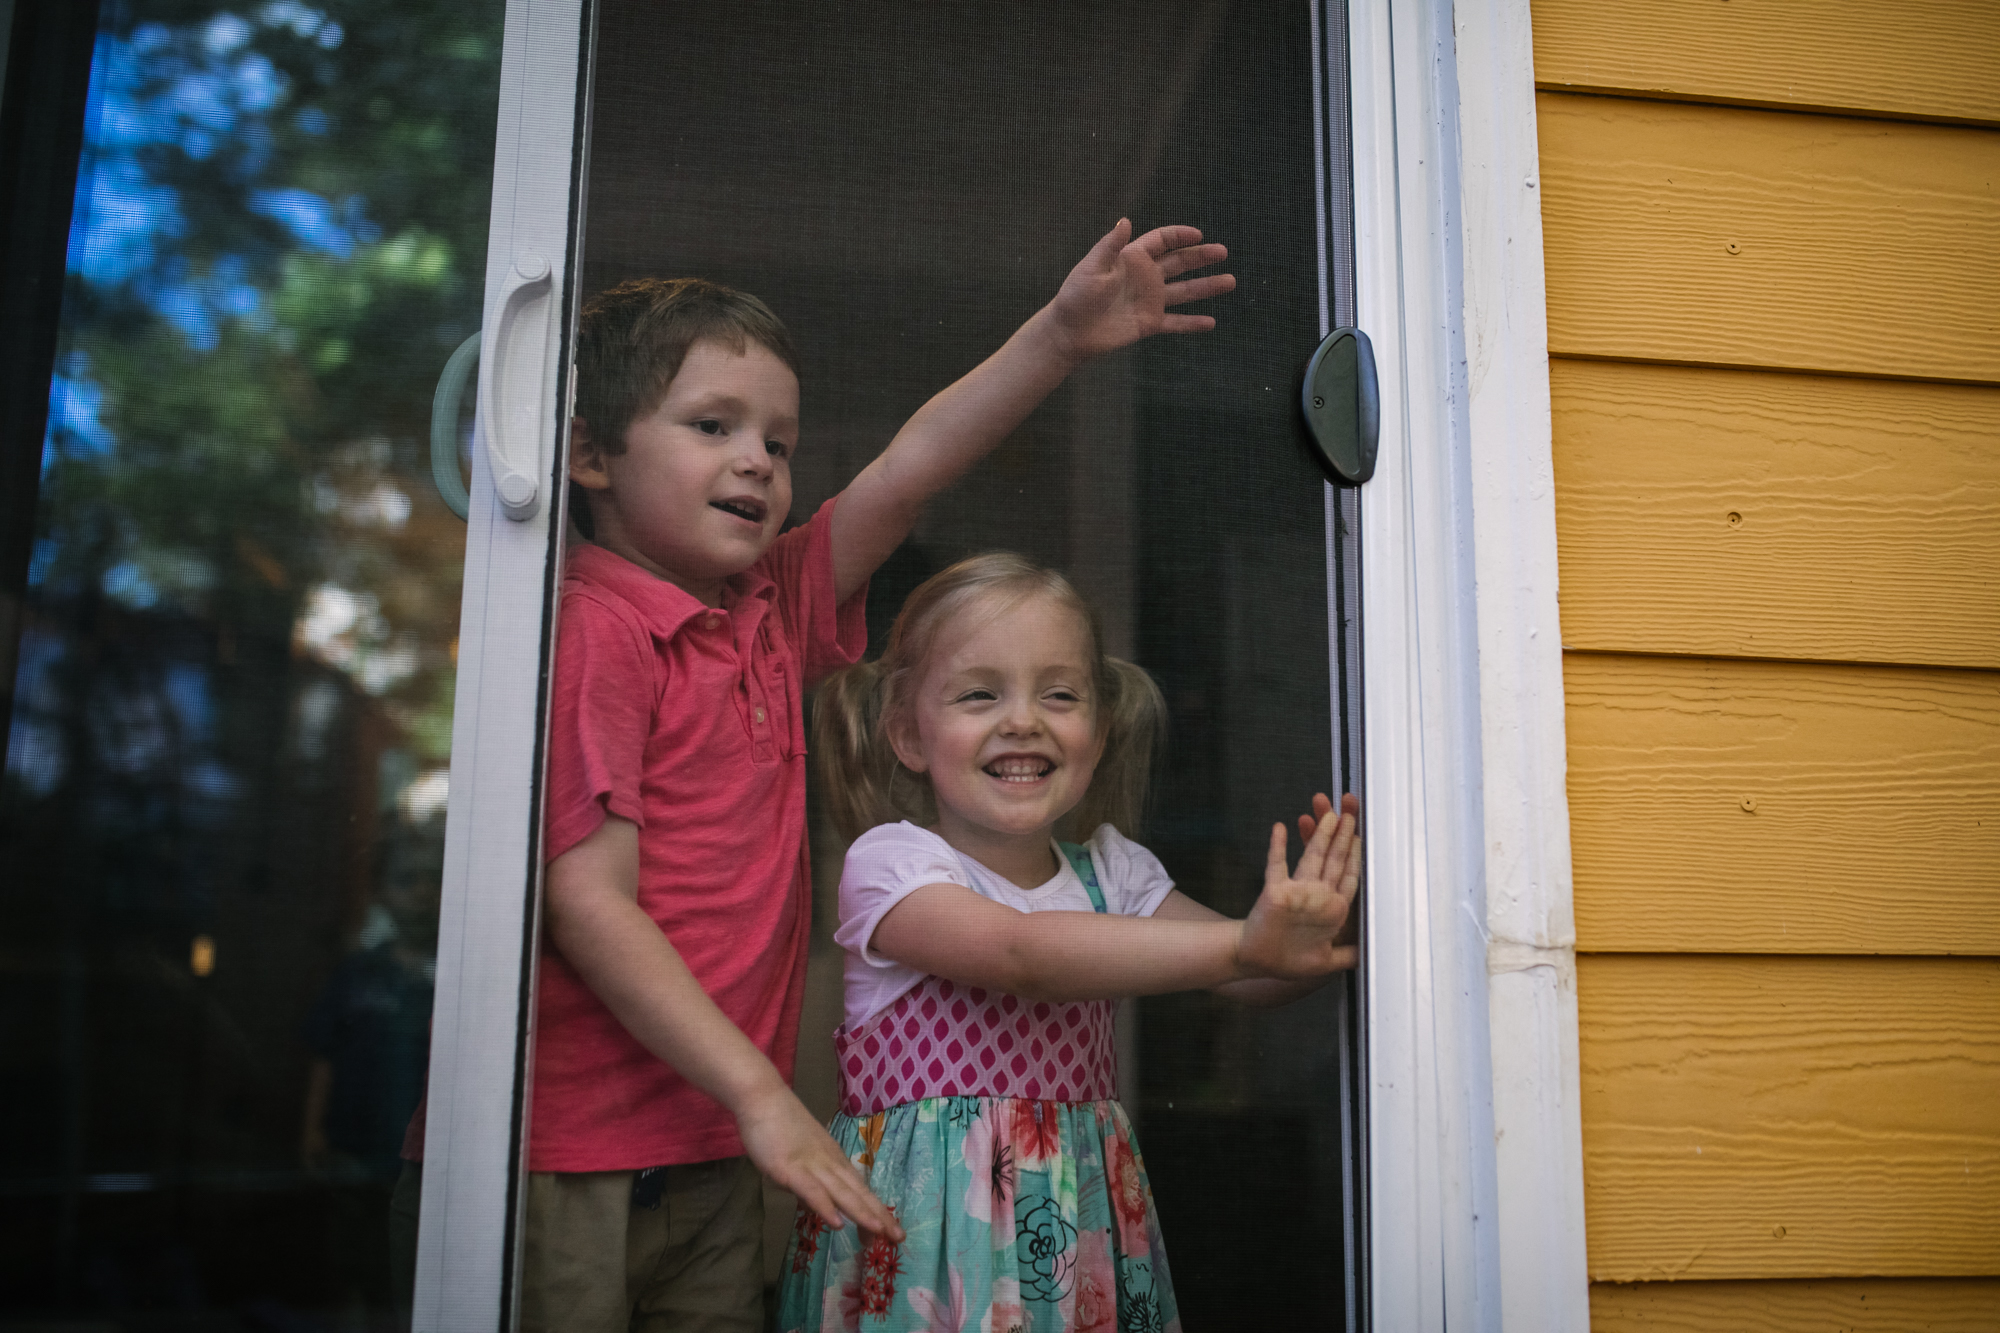 Boy and girl shutting screen sliding door